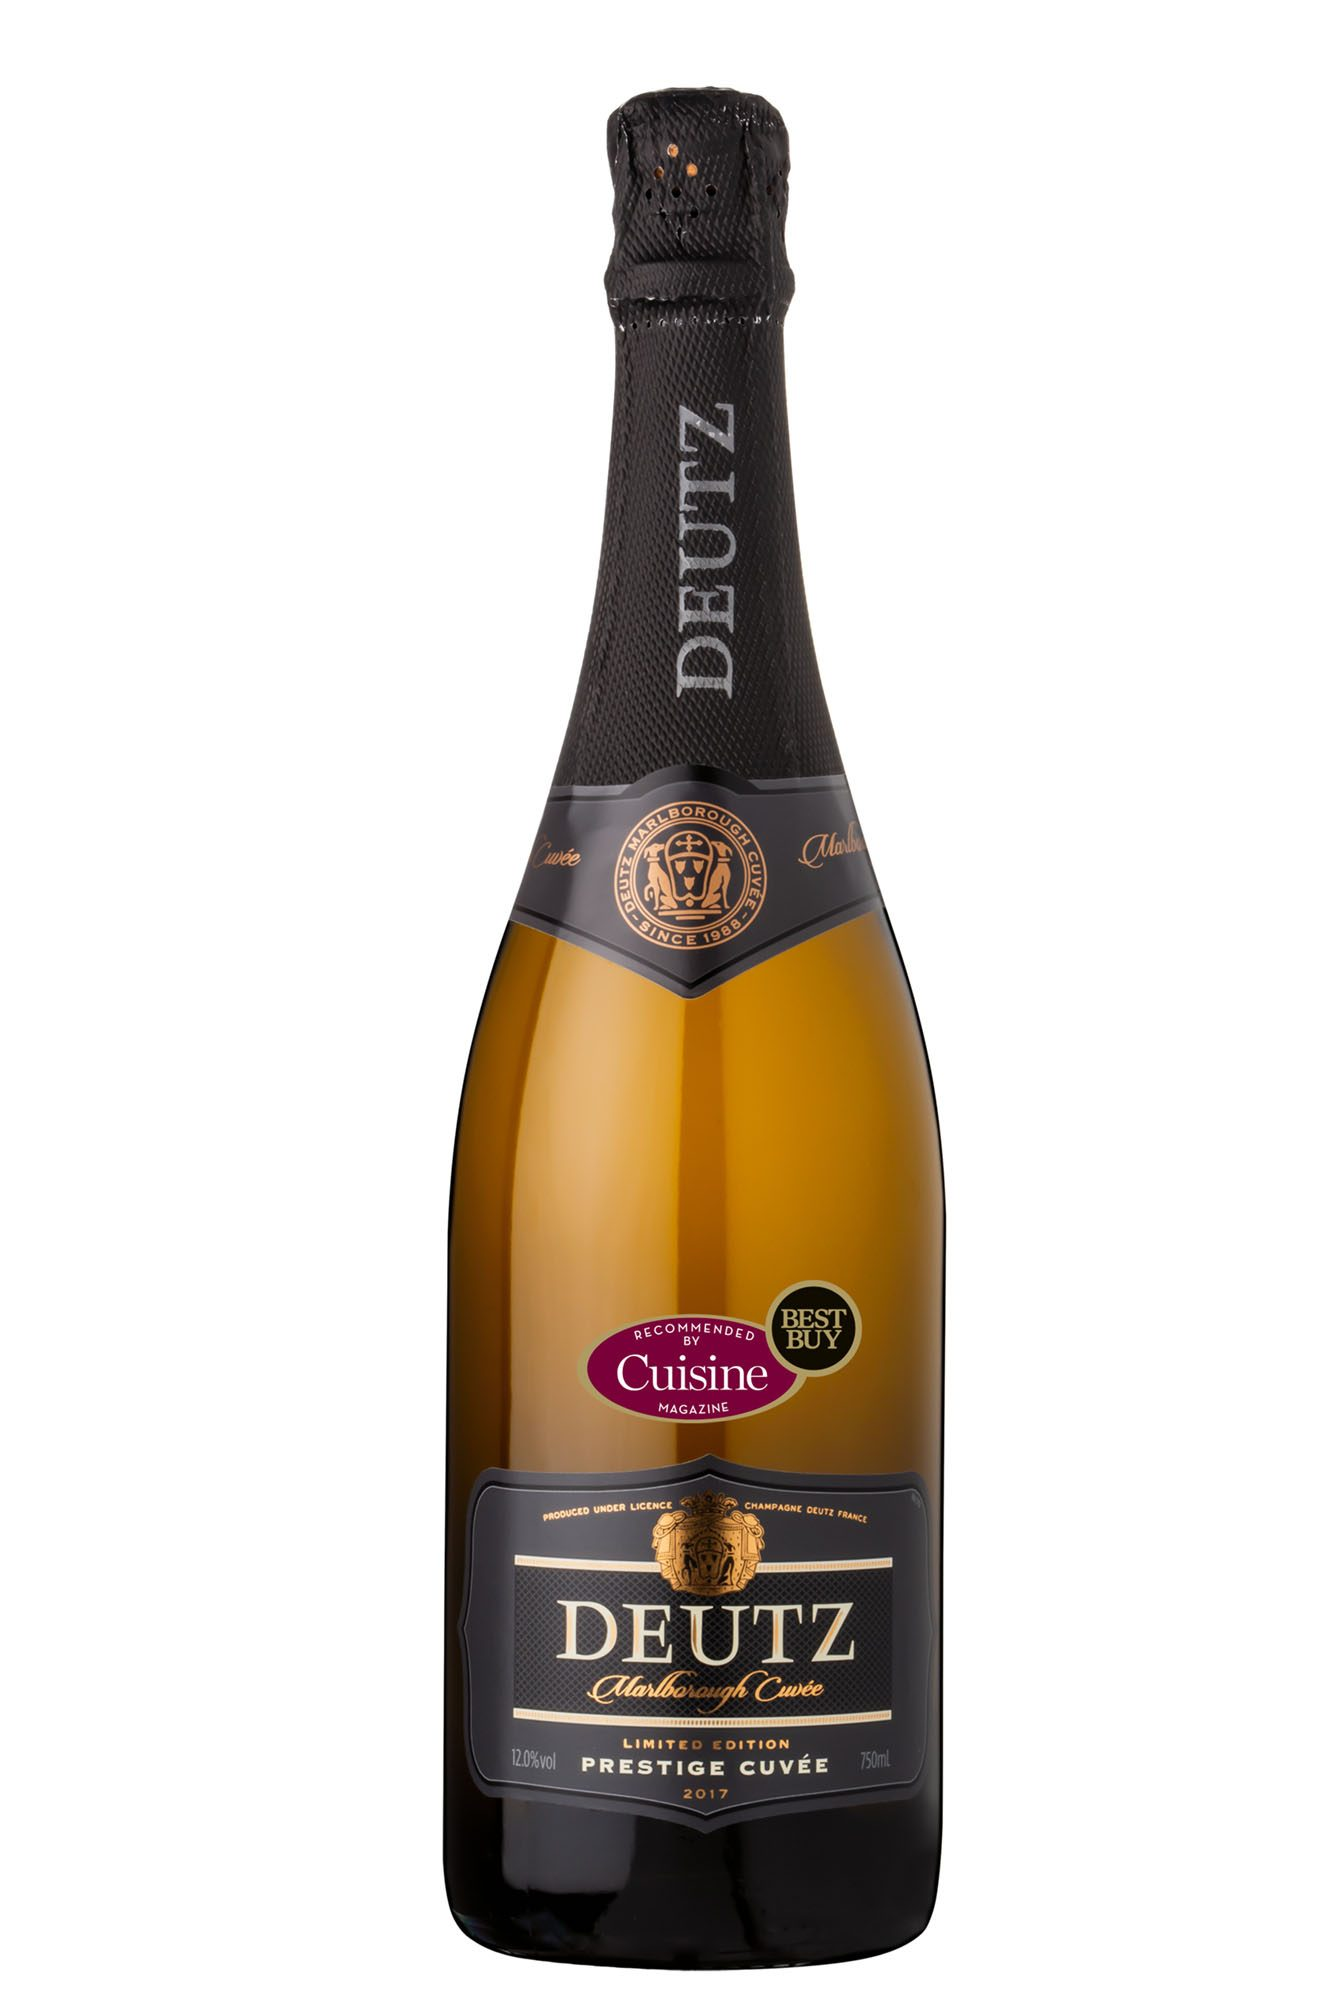 Deutz Marlborough Prestige Cuvée 2017